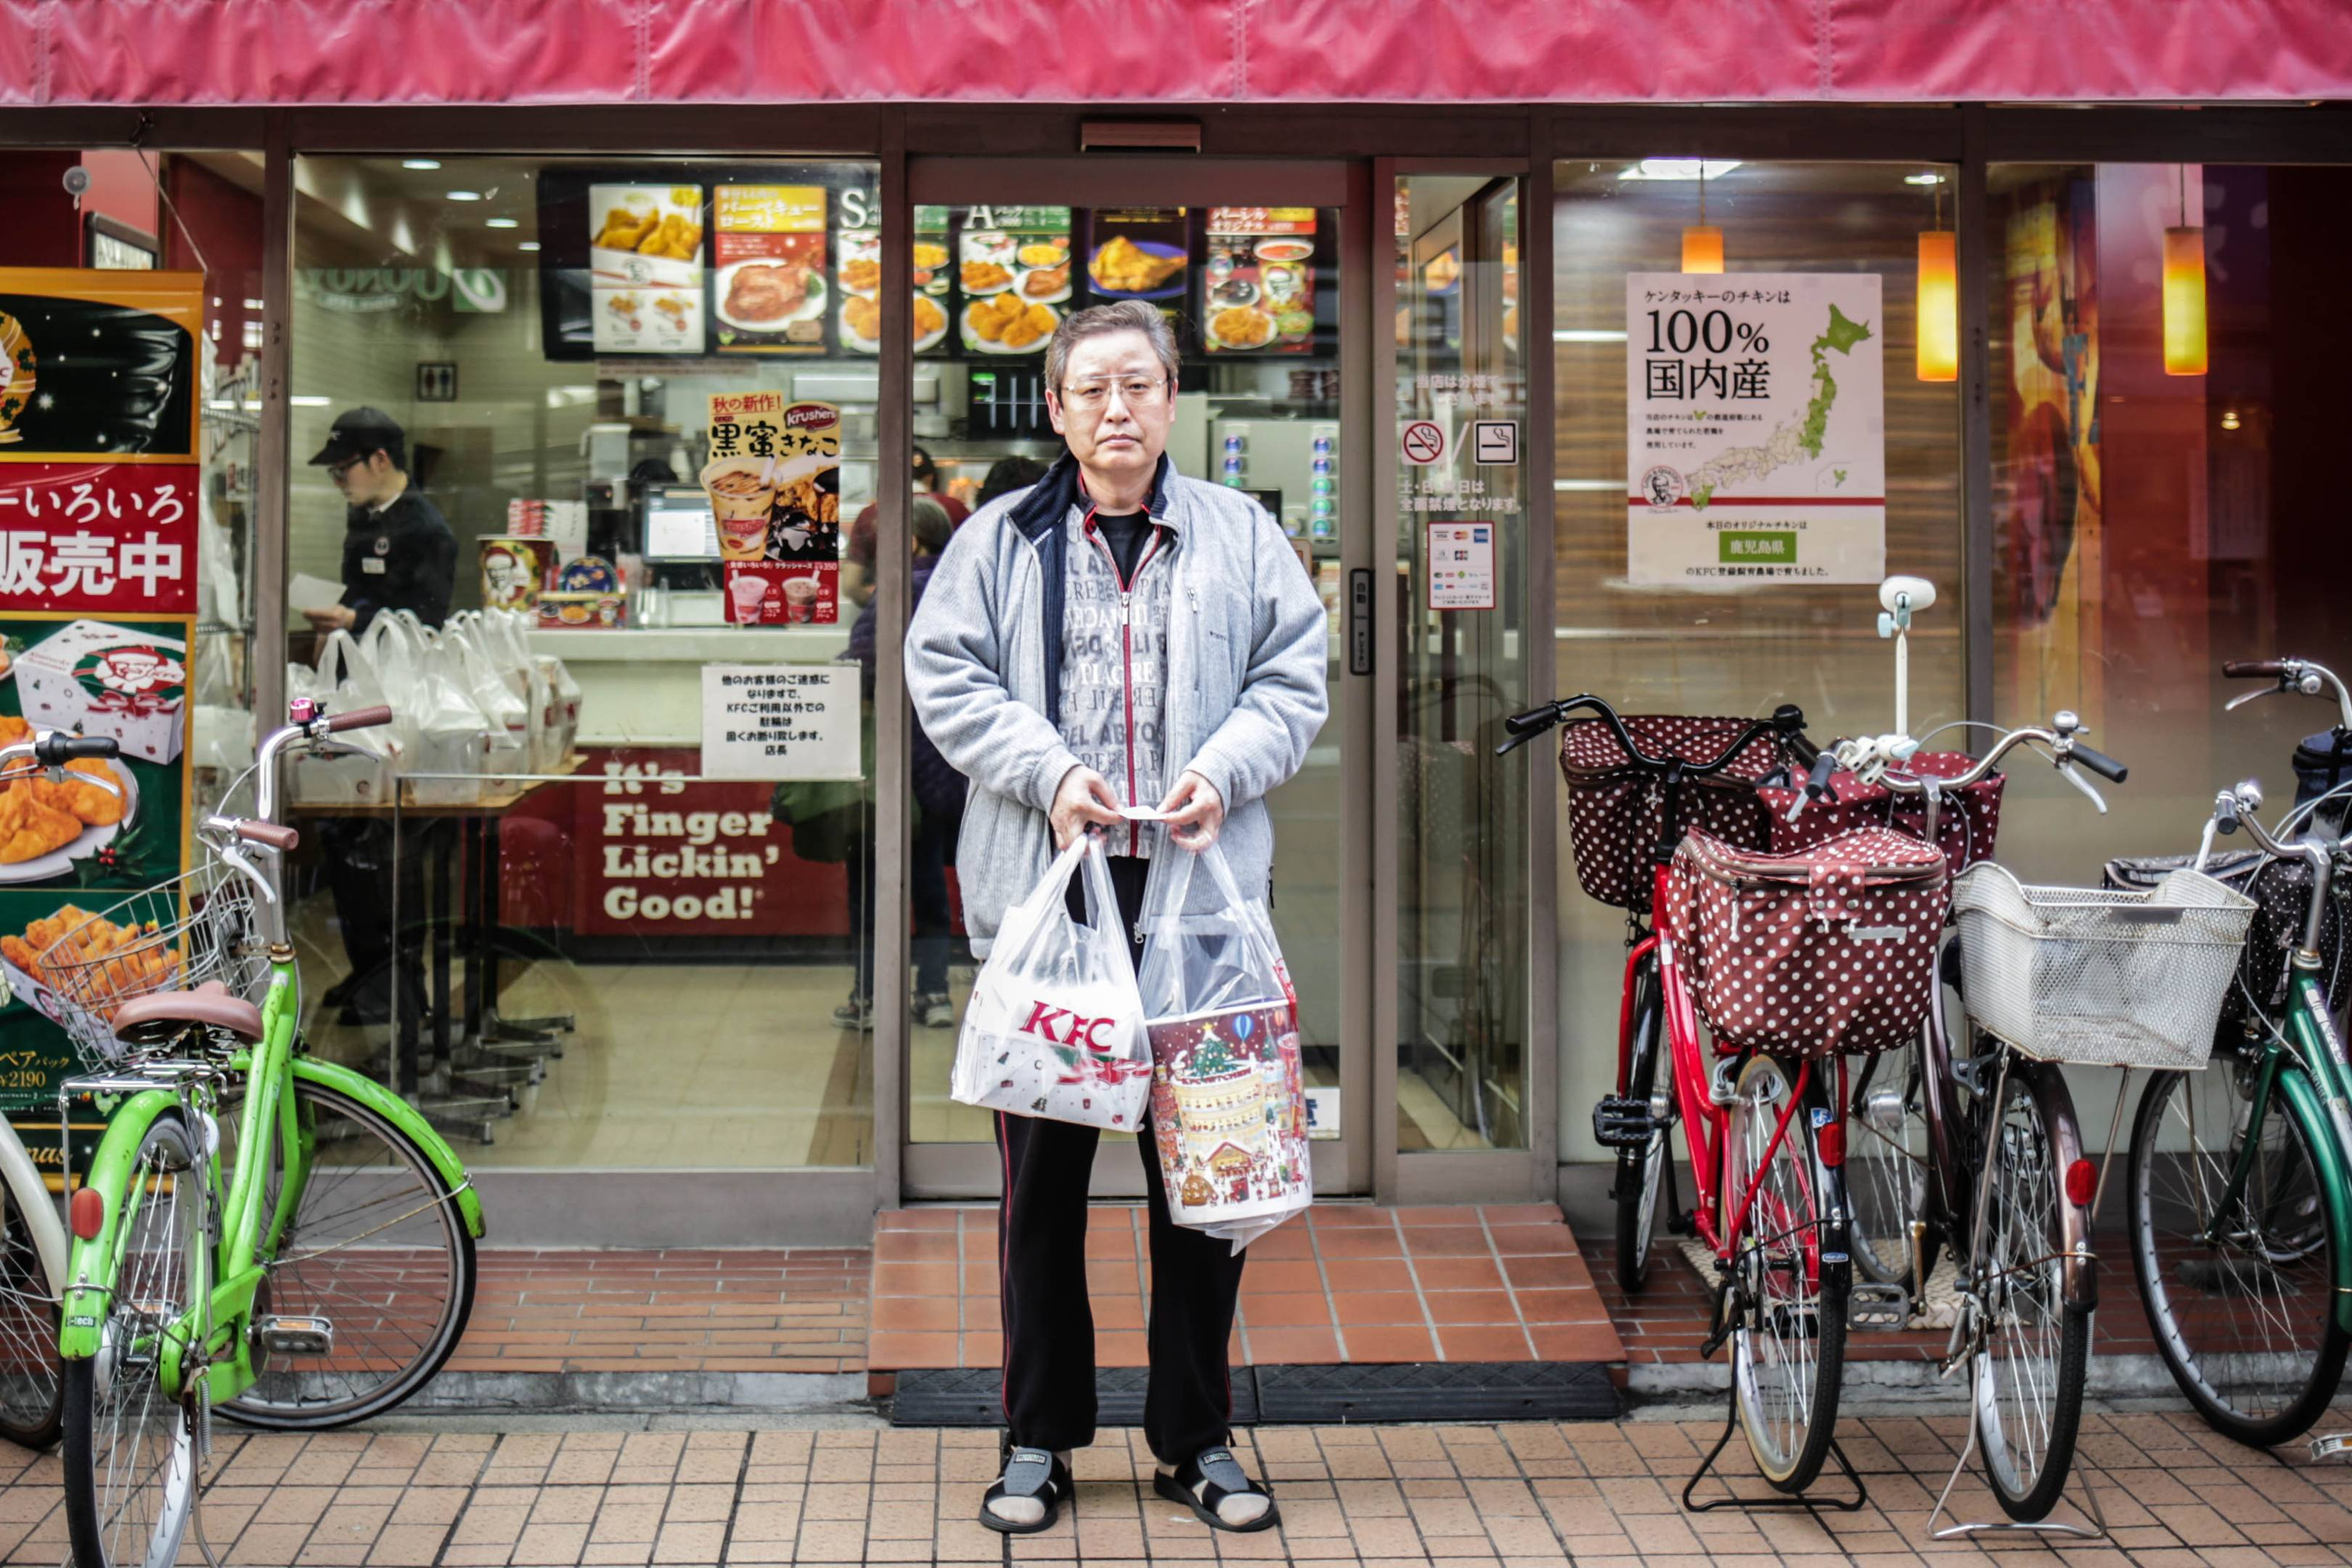 The curious tale of how Japan got hooked on KFC at Christmas